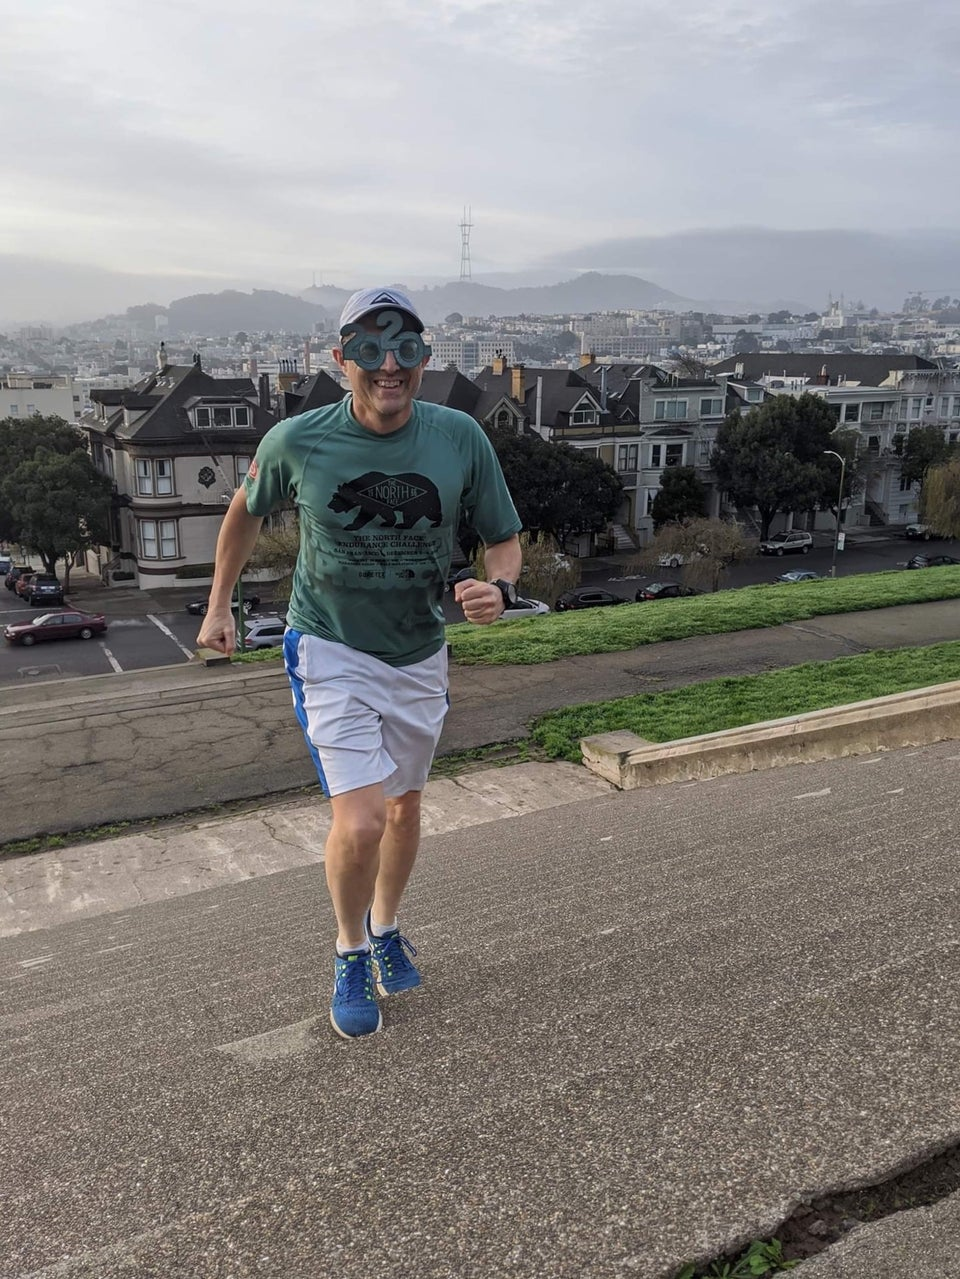 Tantek in running t-shirt, shorts, and cap, also wearing a year 2020 costume glasses running up Alta Plaza park stairs.